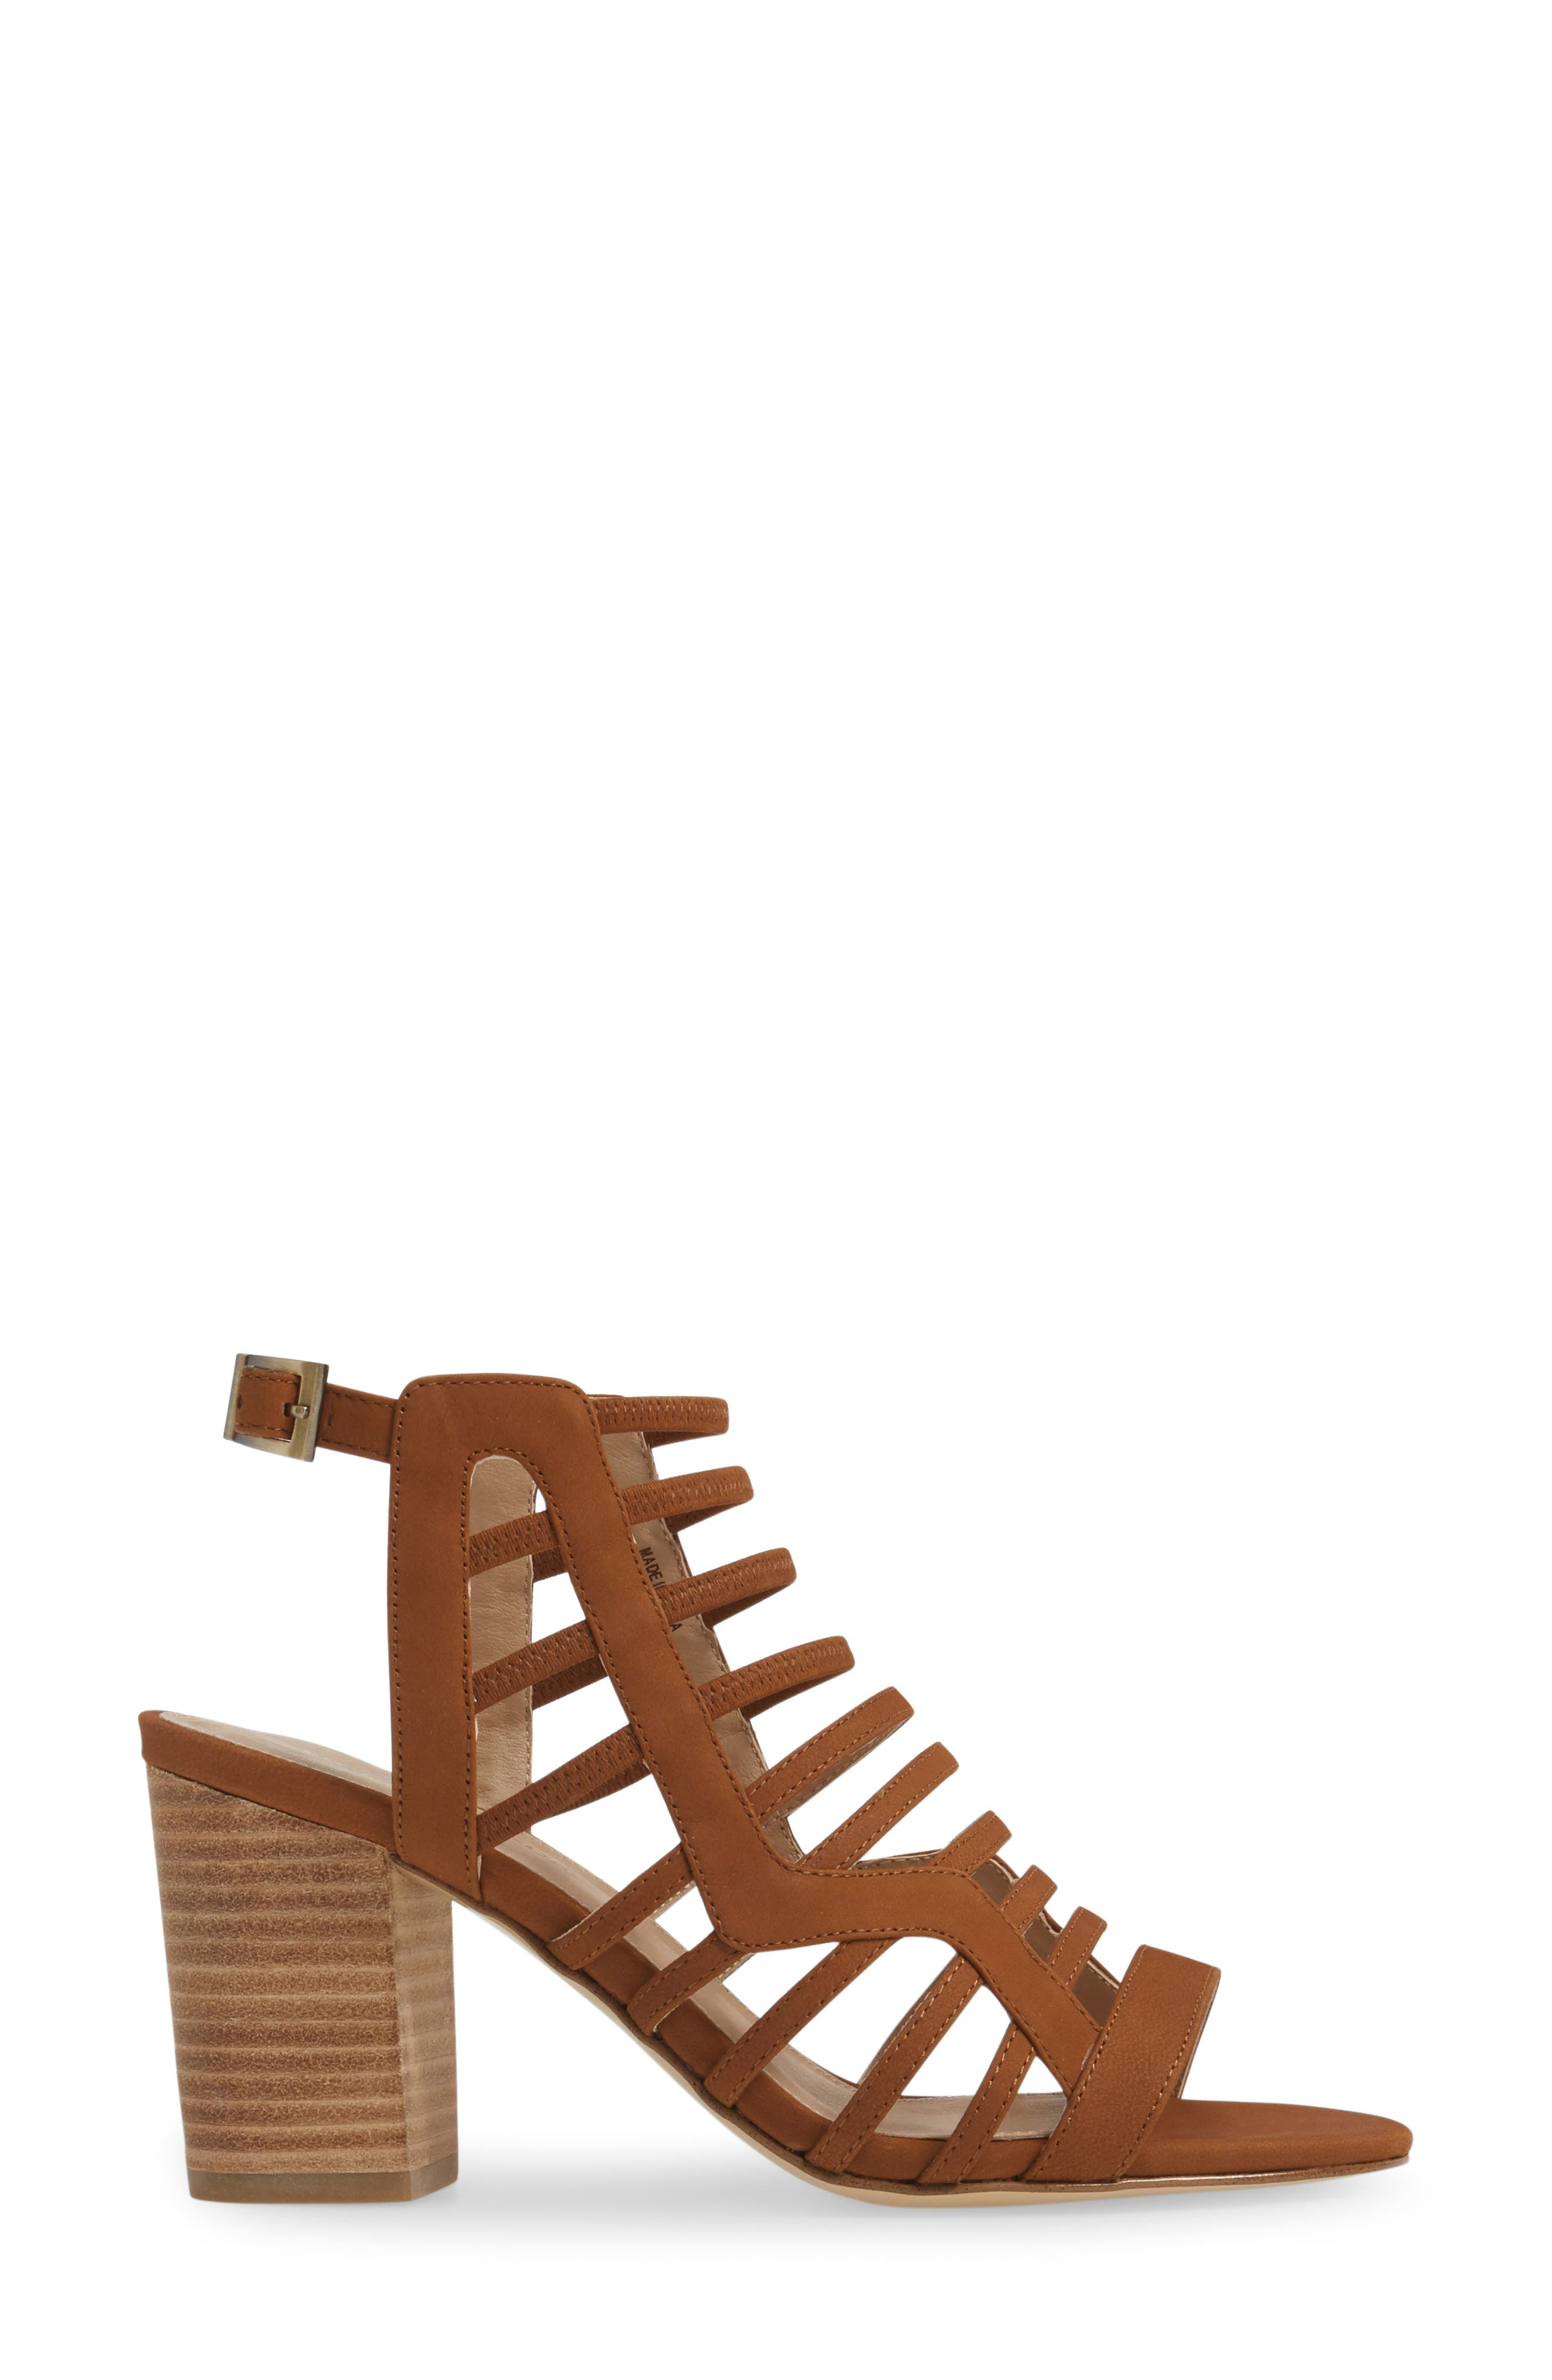 Bonitta Cage Sandal,                             Alternate thumbnail 3, color,                             Luggage Leather